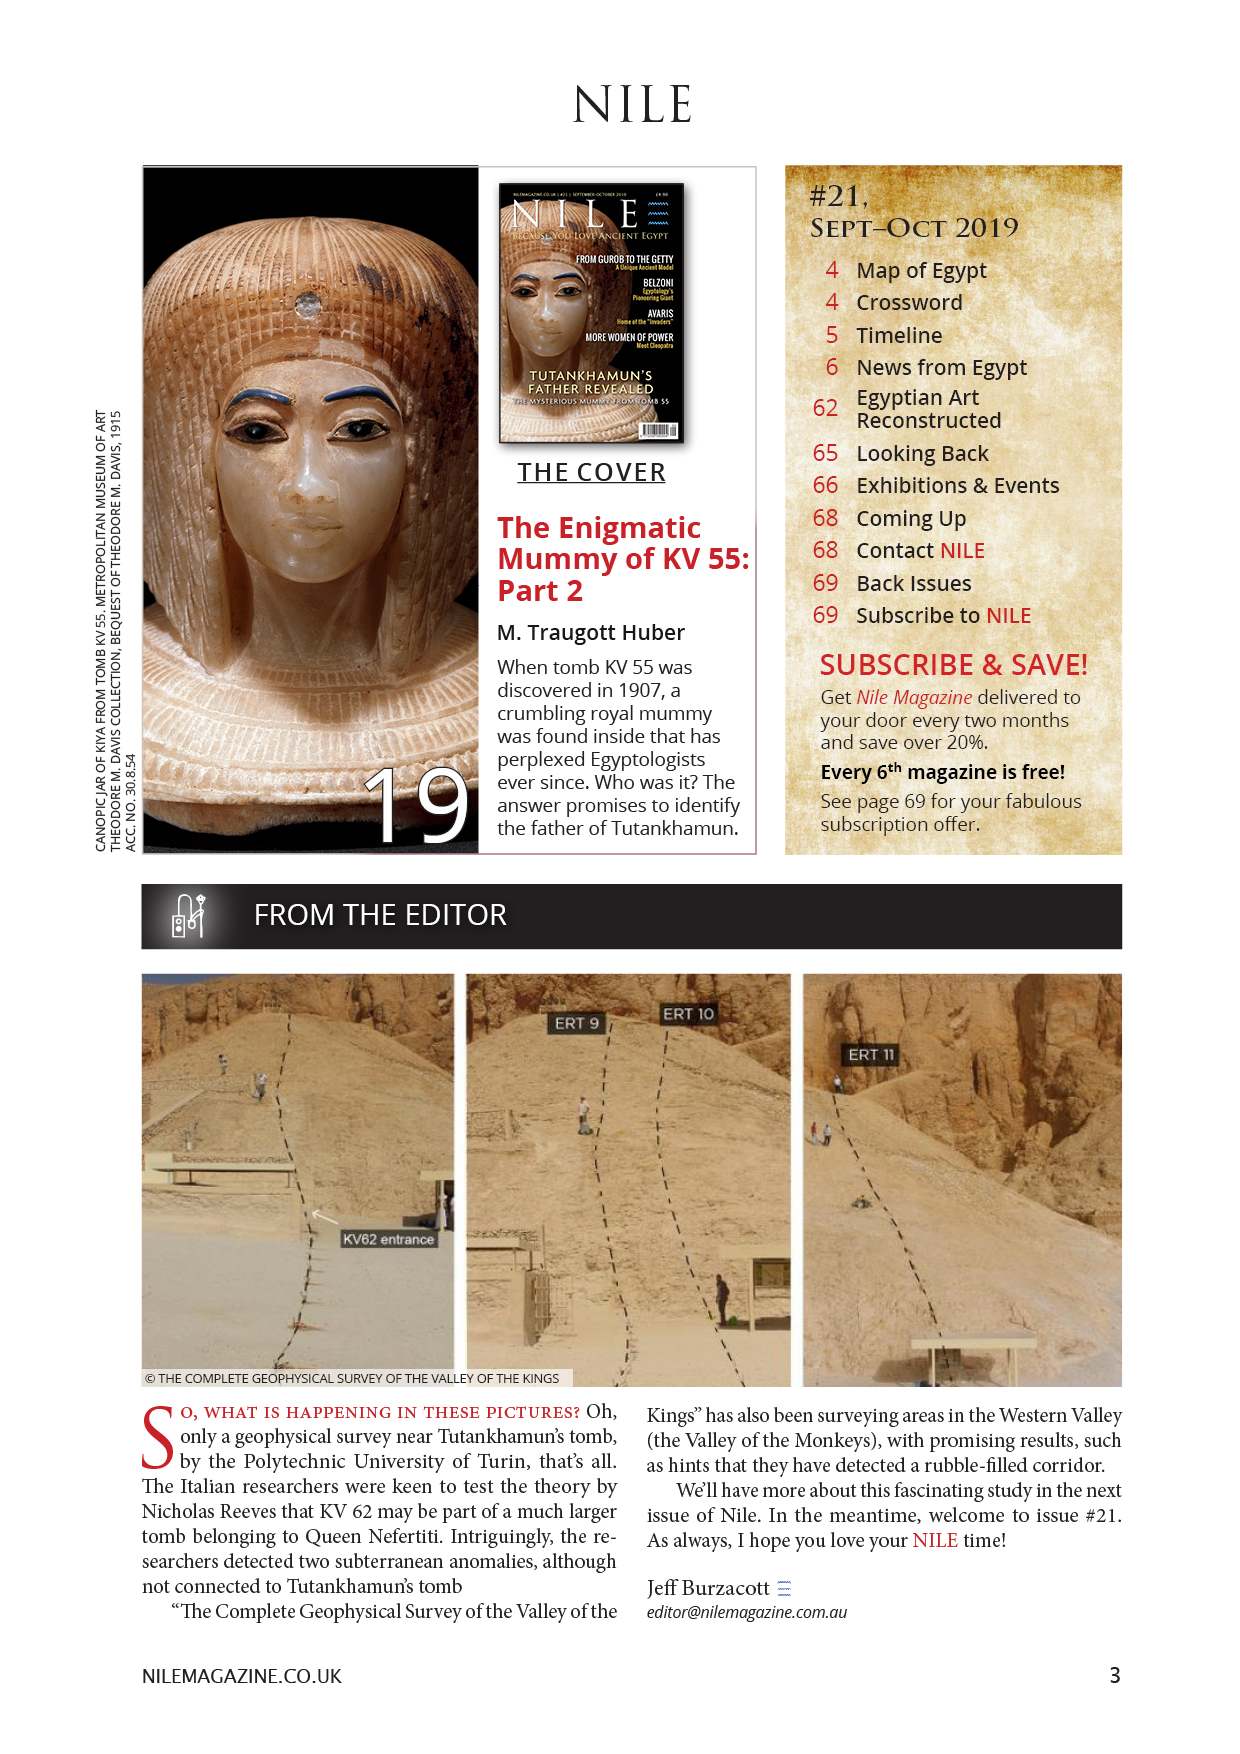 Nile 21, Contents 2 1A.jpg